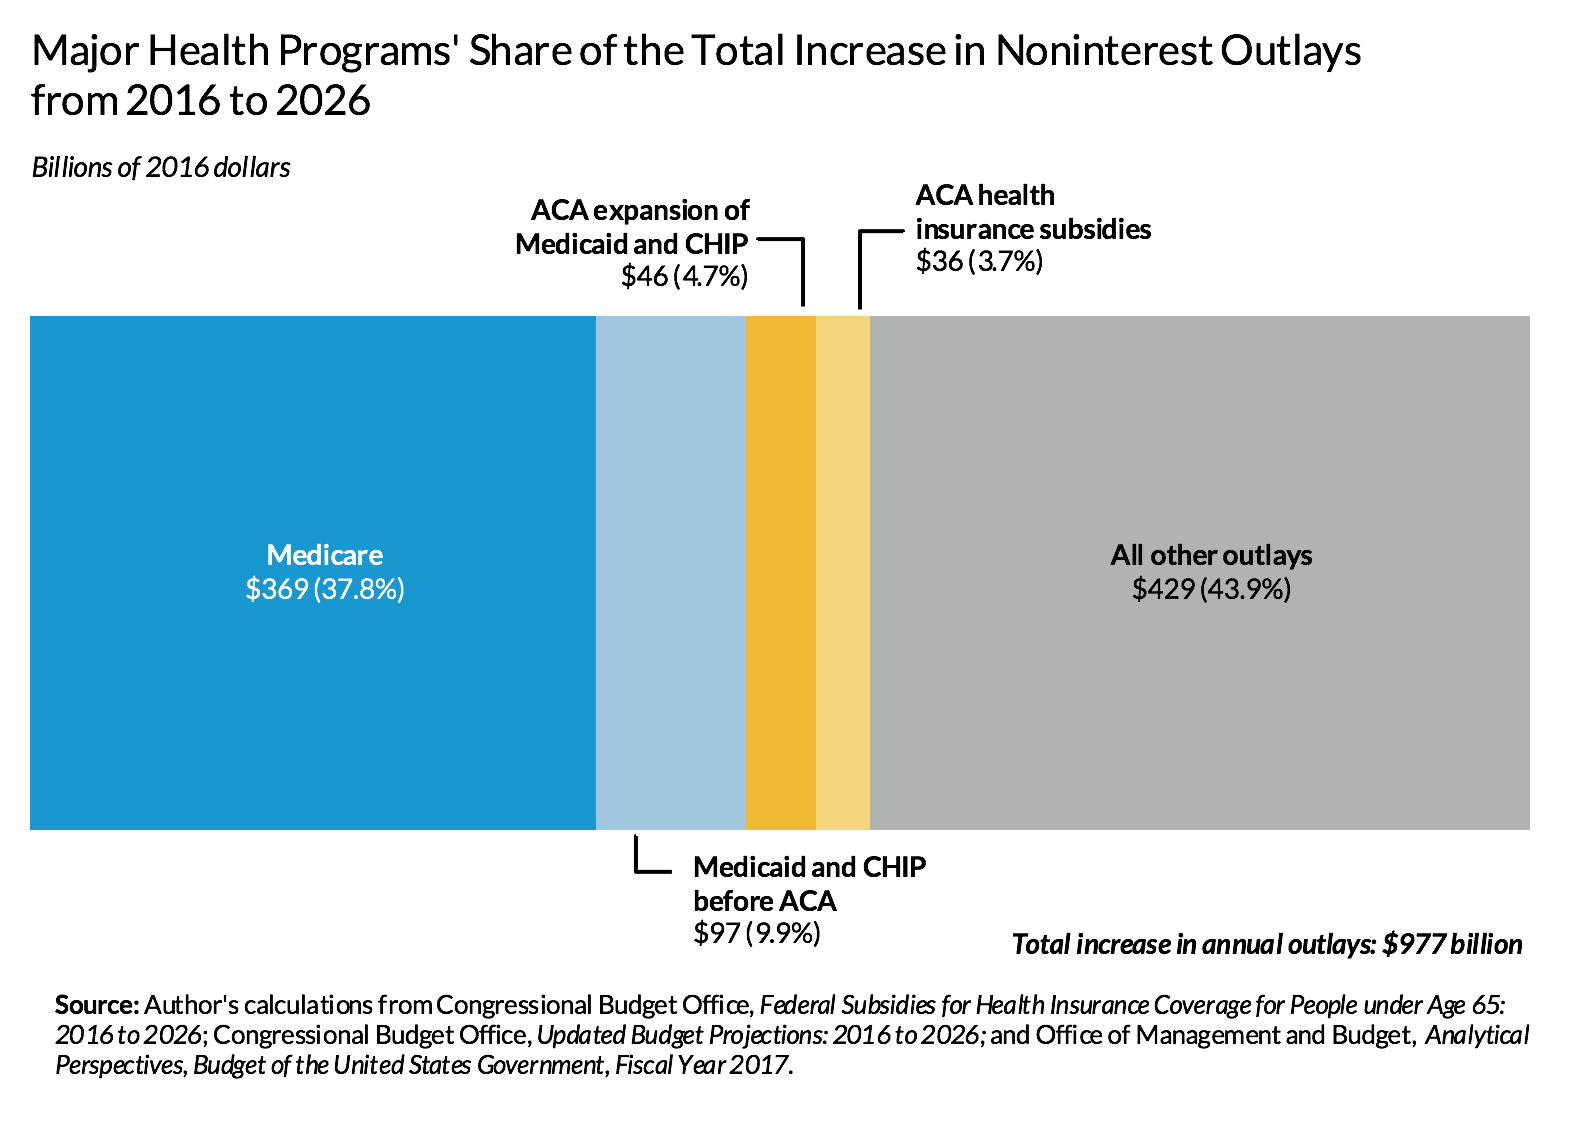 Major health programs' share of the total increase in noninterest outlays